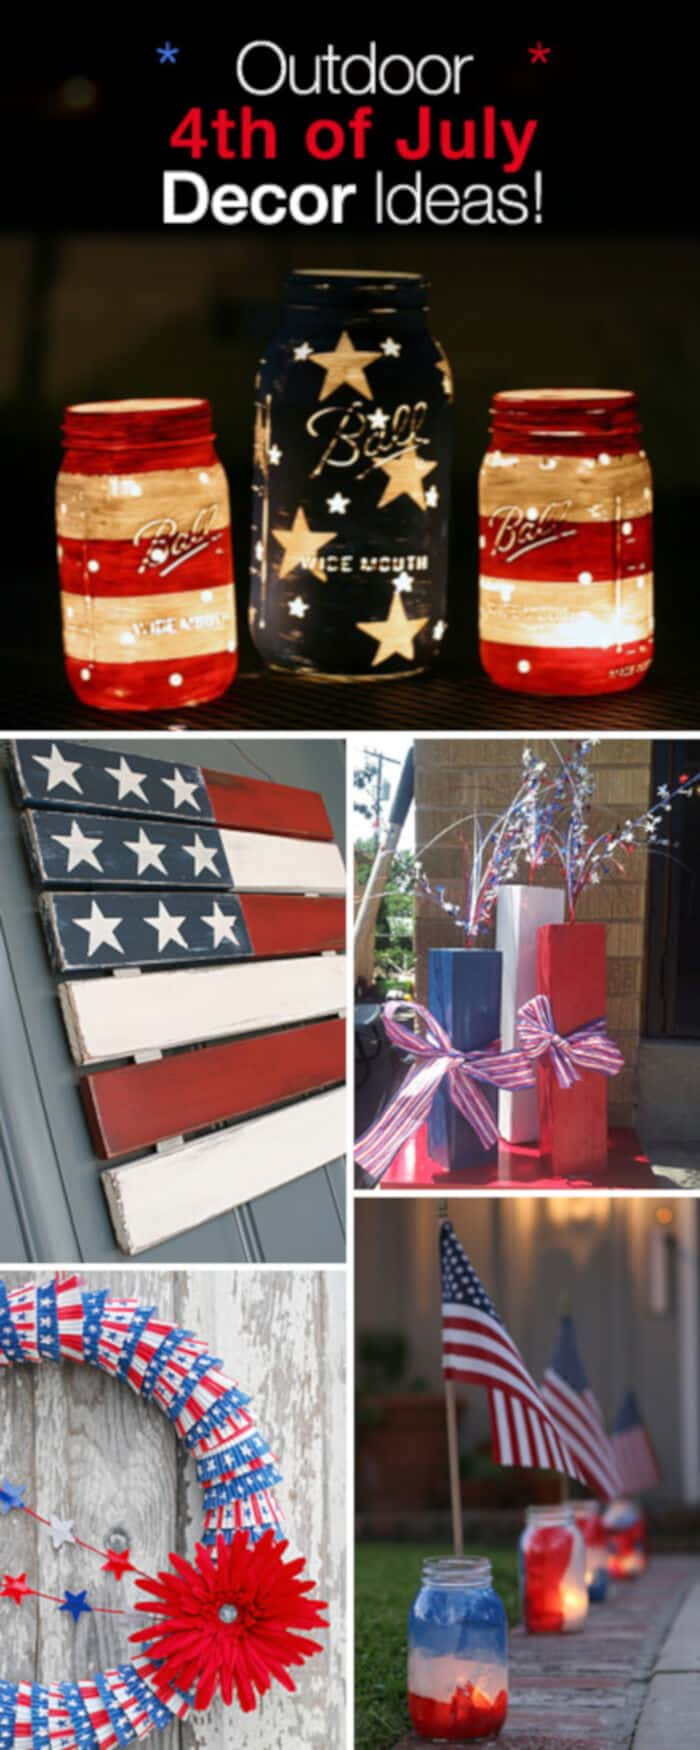 Outdoor 4th of July Decor by The Garden Glove